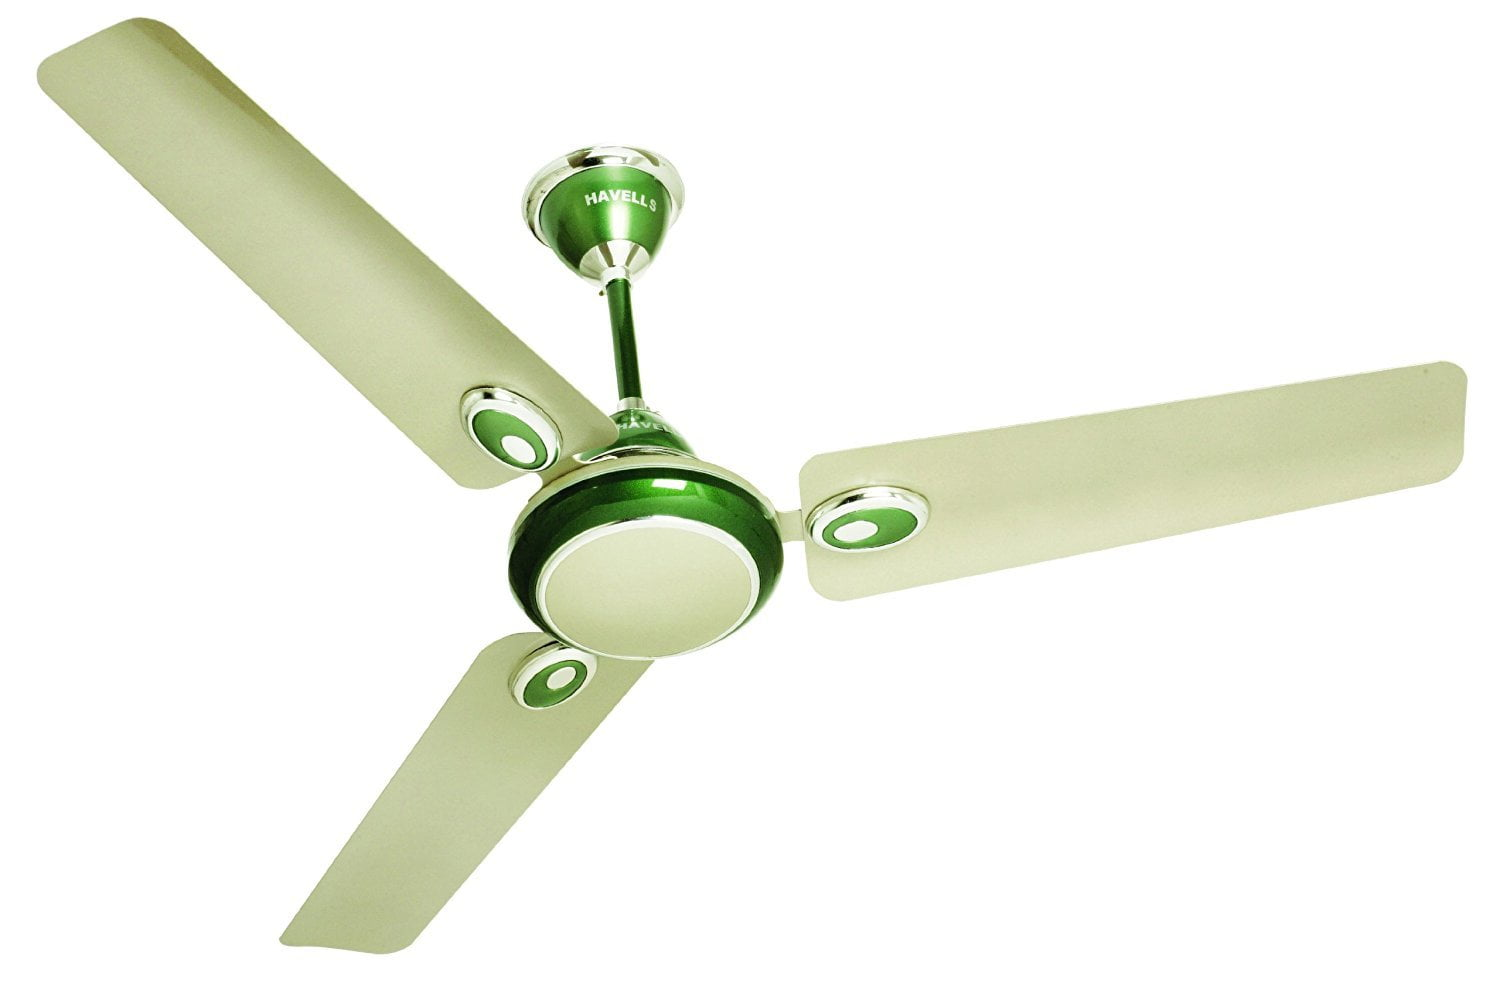 A ceiling fan can help air circulate more efficiently